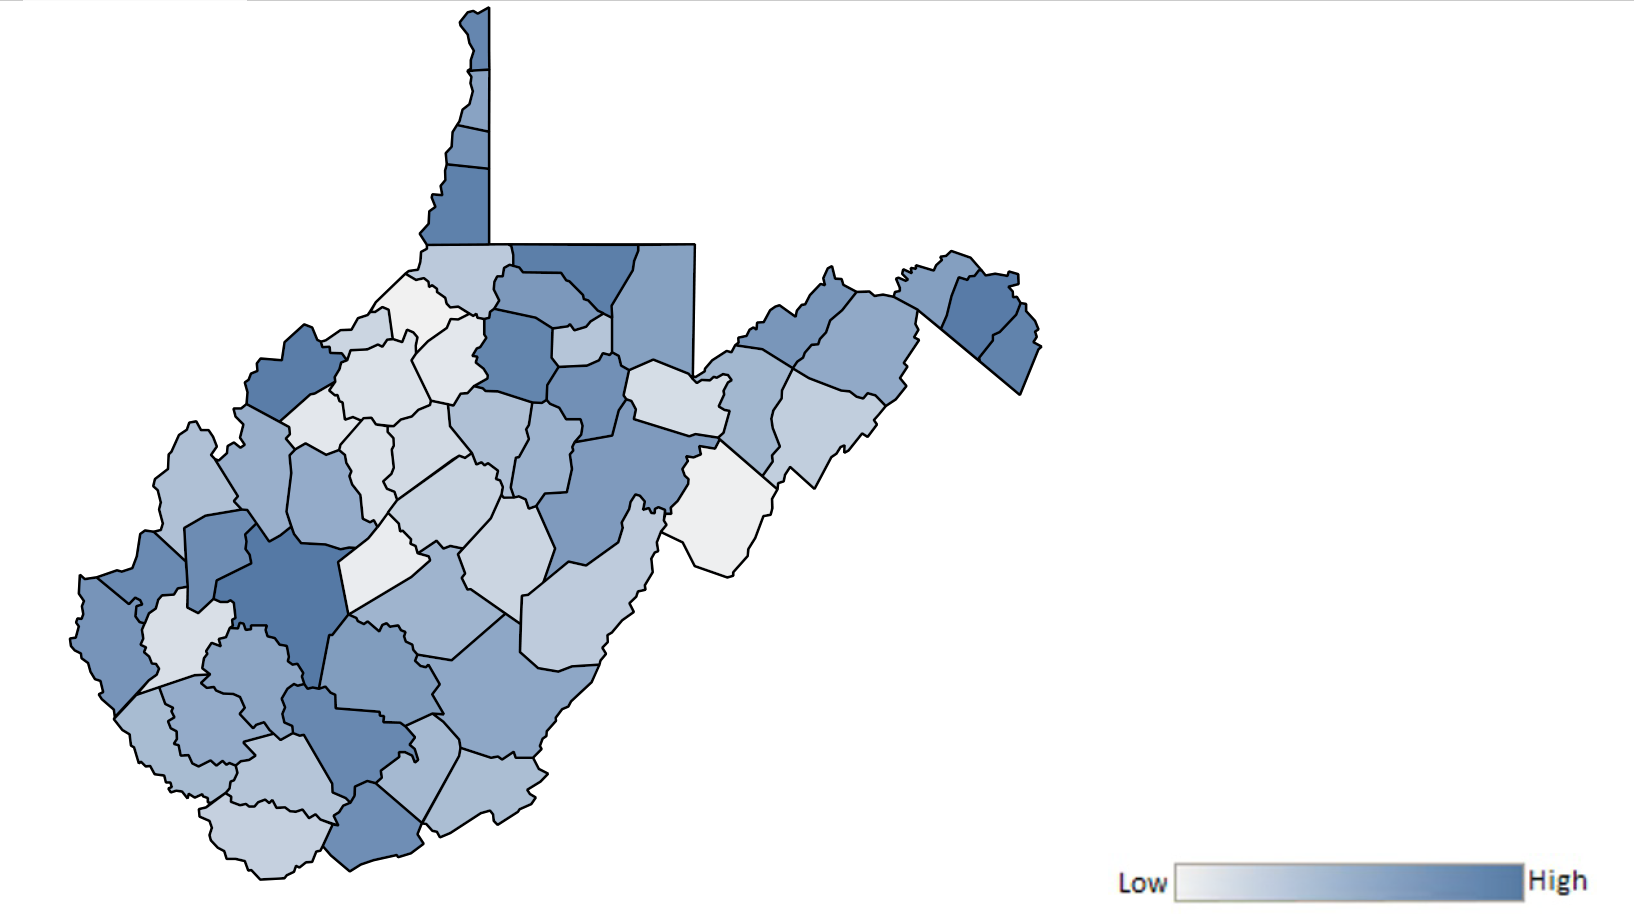 Map of West Virginia counties indicating relative number of complaints from low to high. See attached CSV file for complaint data by jurisdiction.